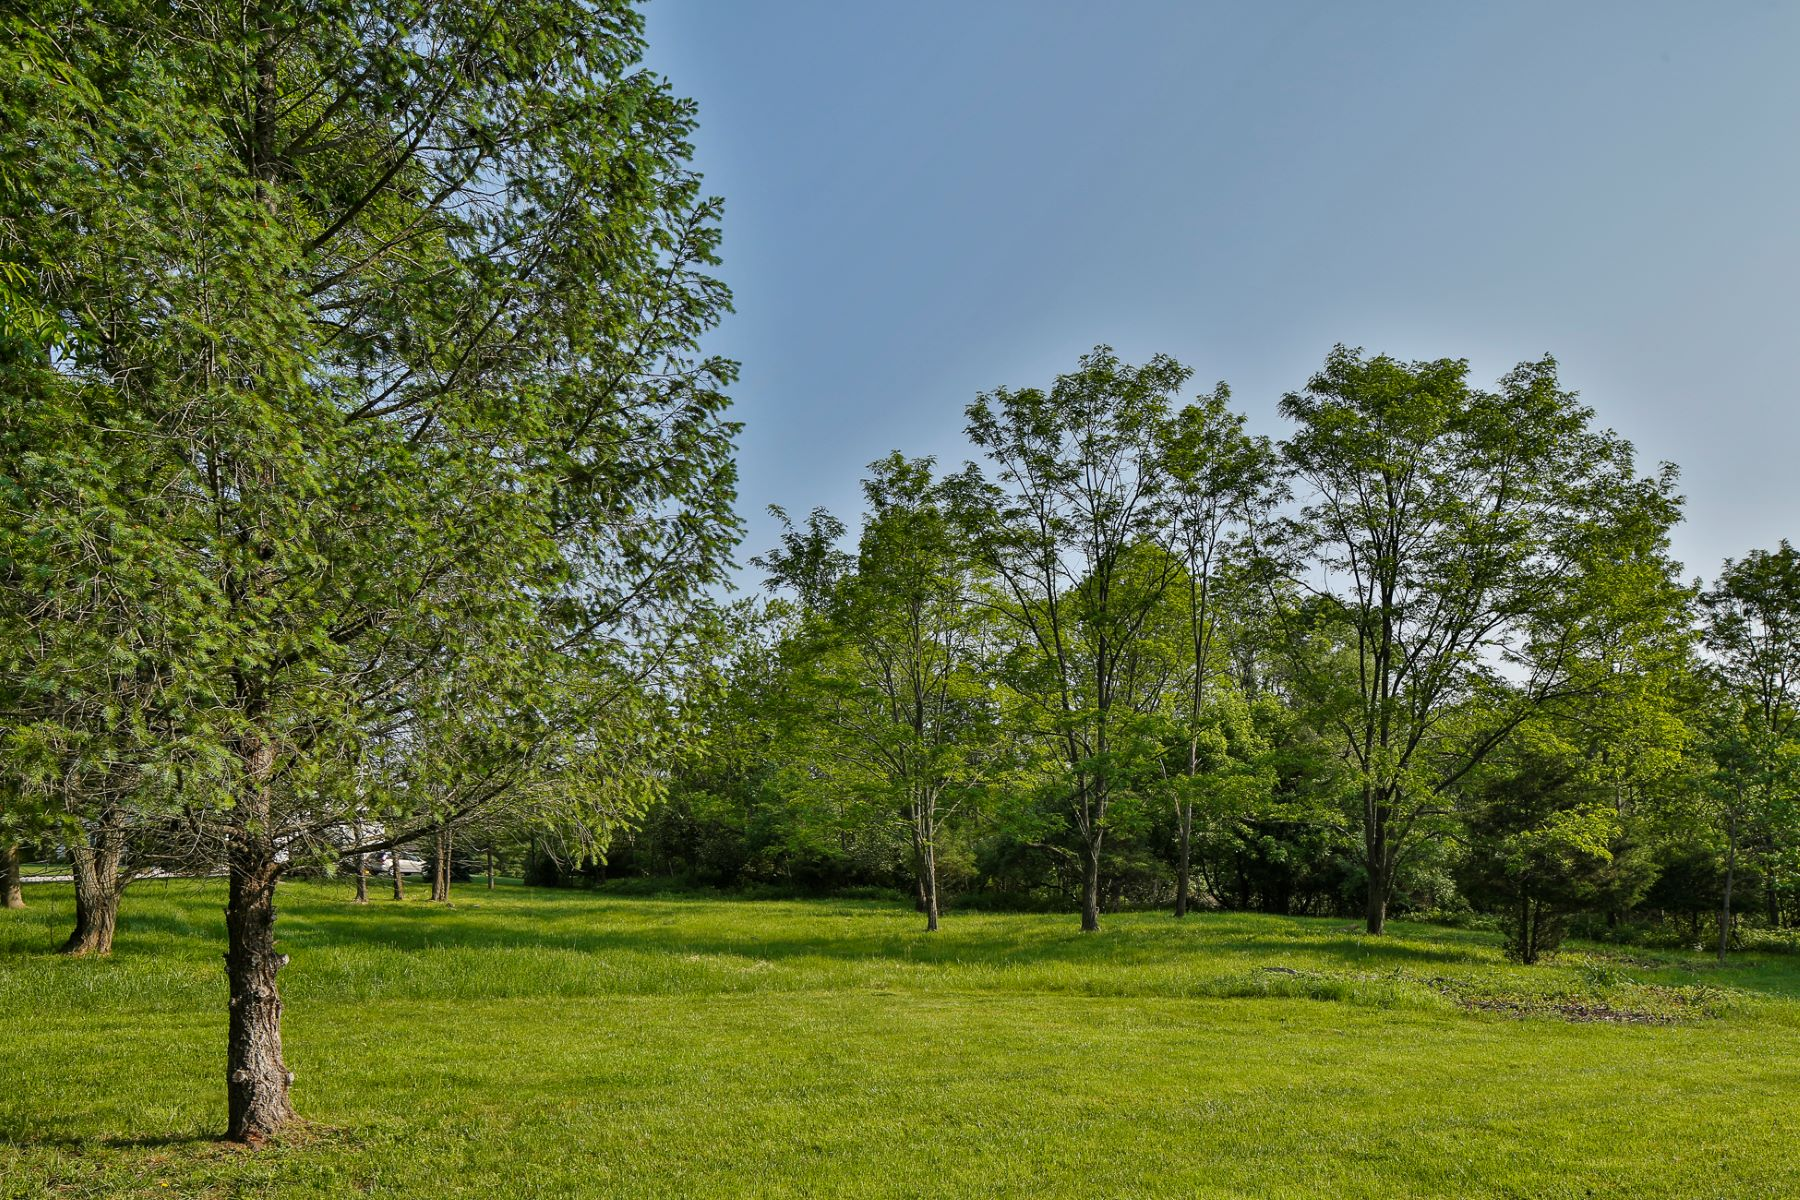 Land for Sale at Ready to Build Lot in Lawrence Township 16 Buckingham Drive Princeton, New Jersey 08540 United States